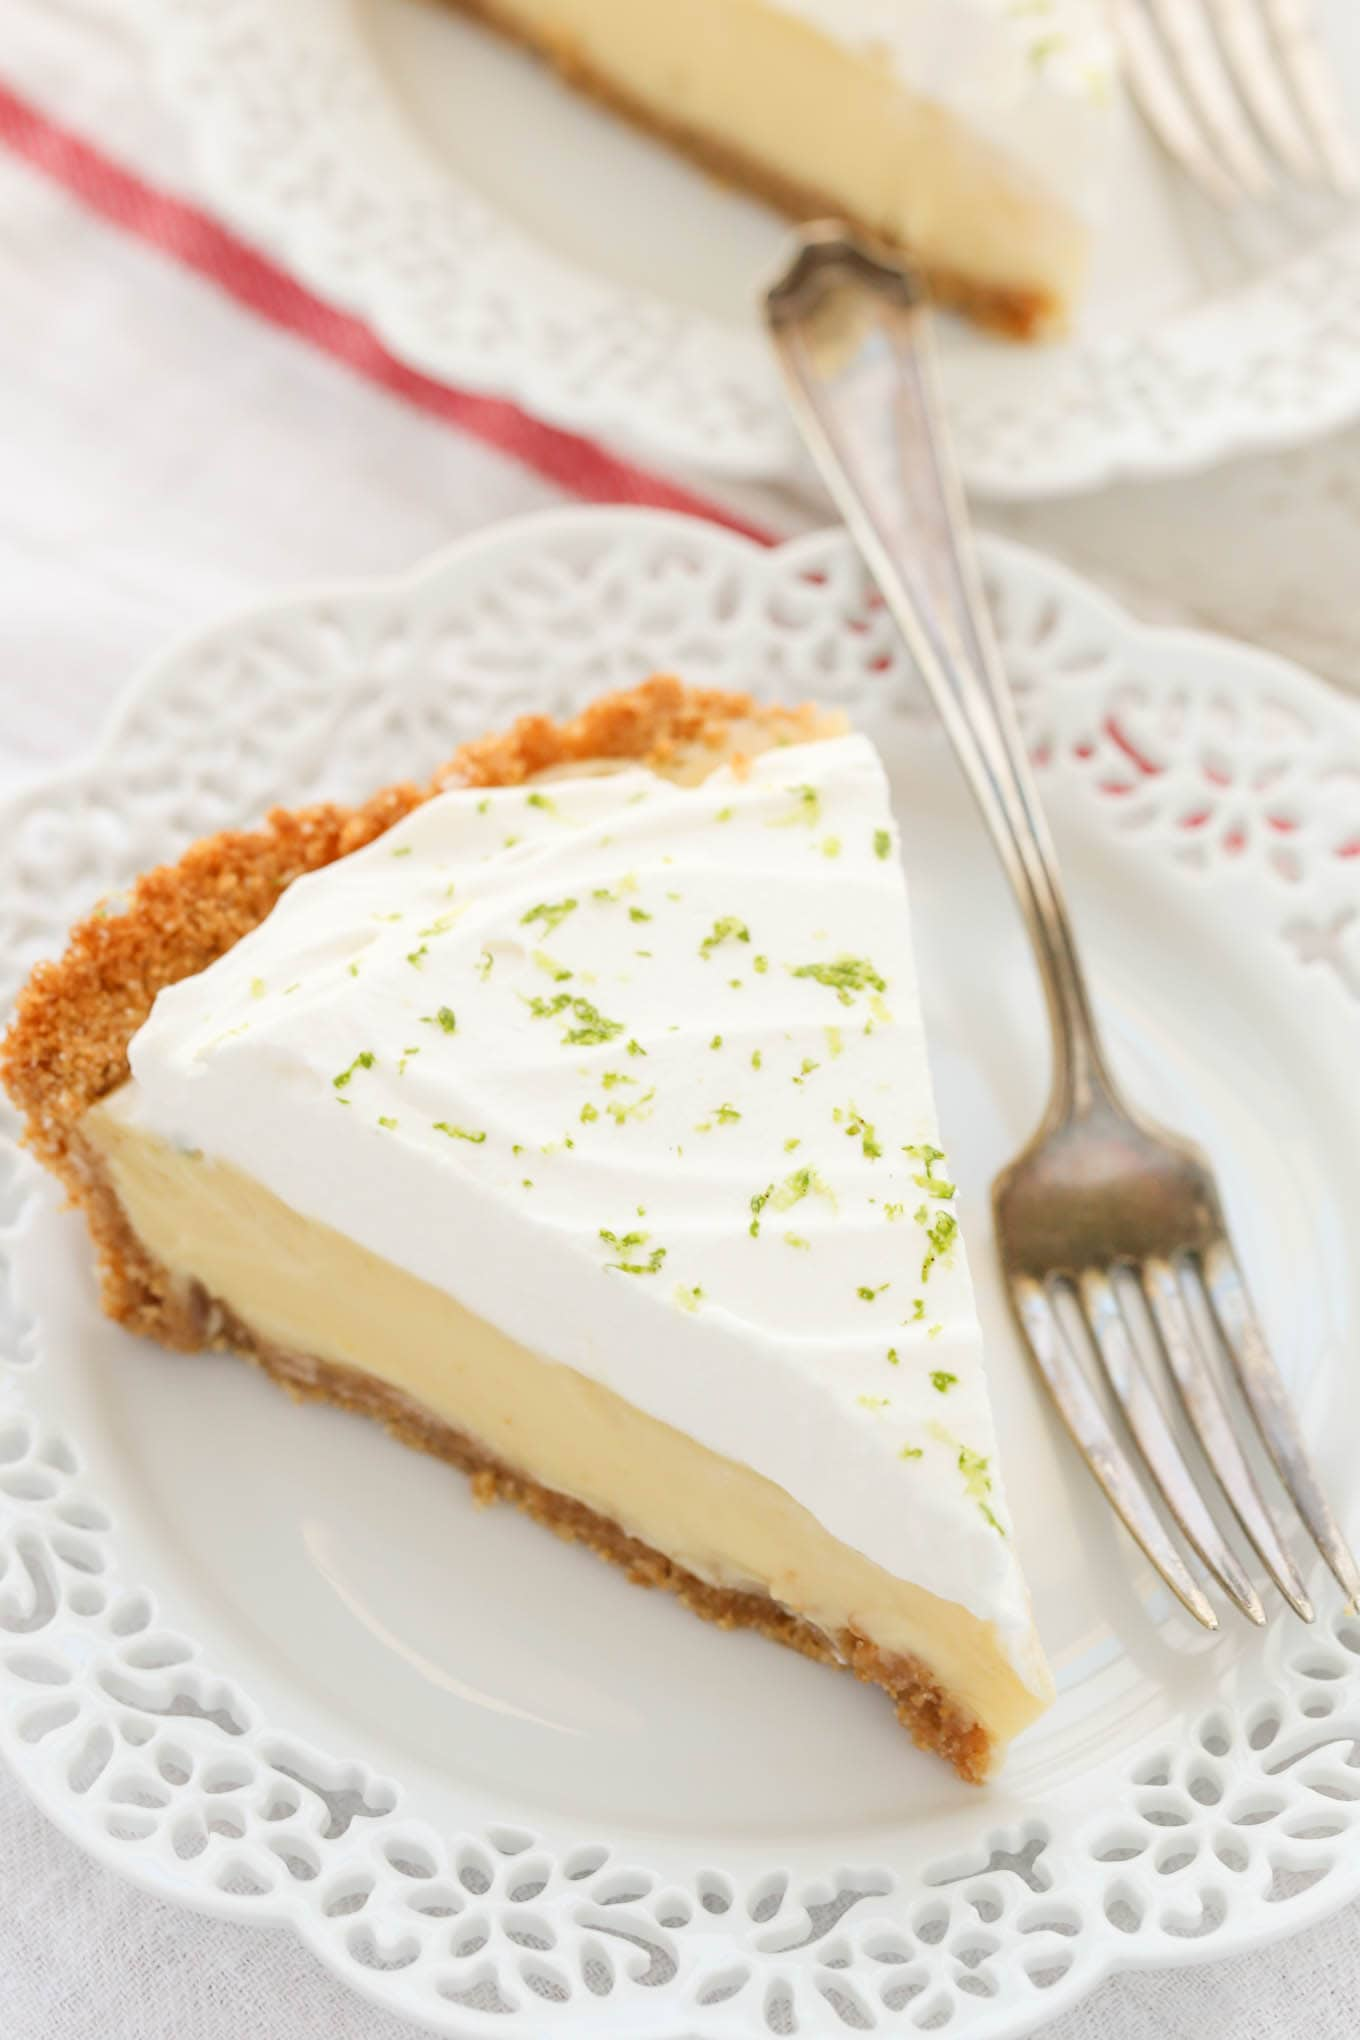 The Classic Key Lime Pie features an easy homemade graham cracker crust, a smooth and creamy key lime pie filling, and homemade whipped cream on top. The perfect dessert for key lime lovers!